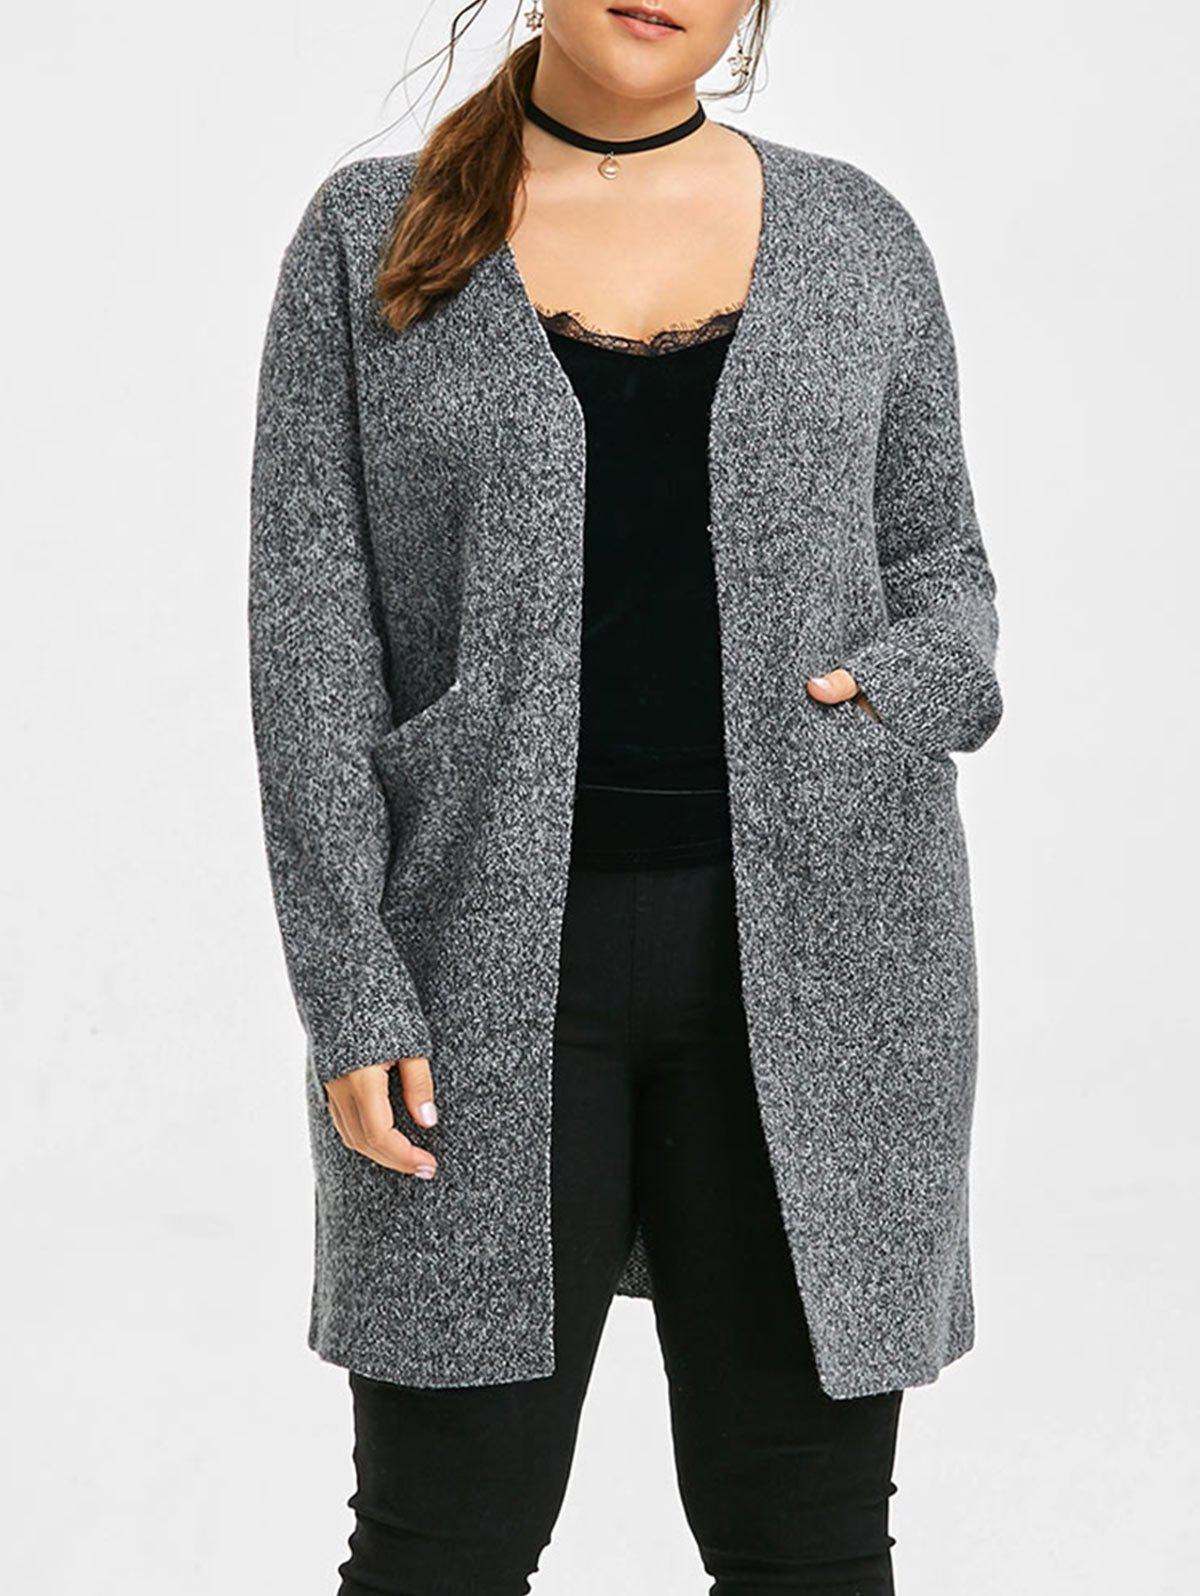 Rooo Patterned Plus Size Knit Long Cardigan - DARK GRAY 4XL